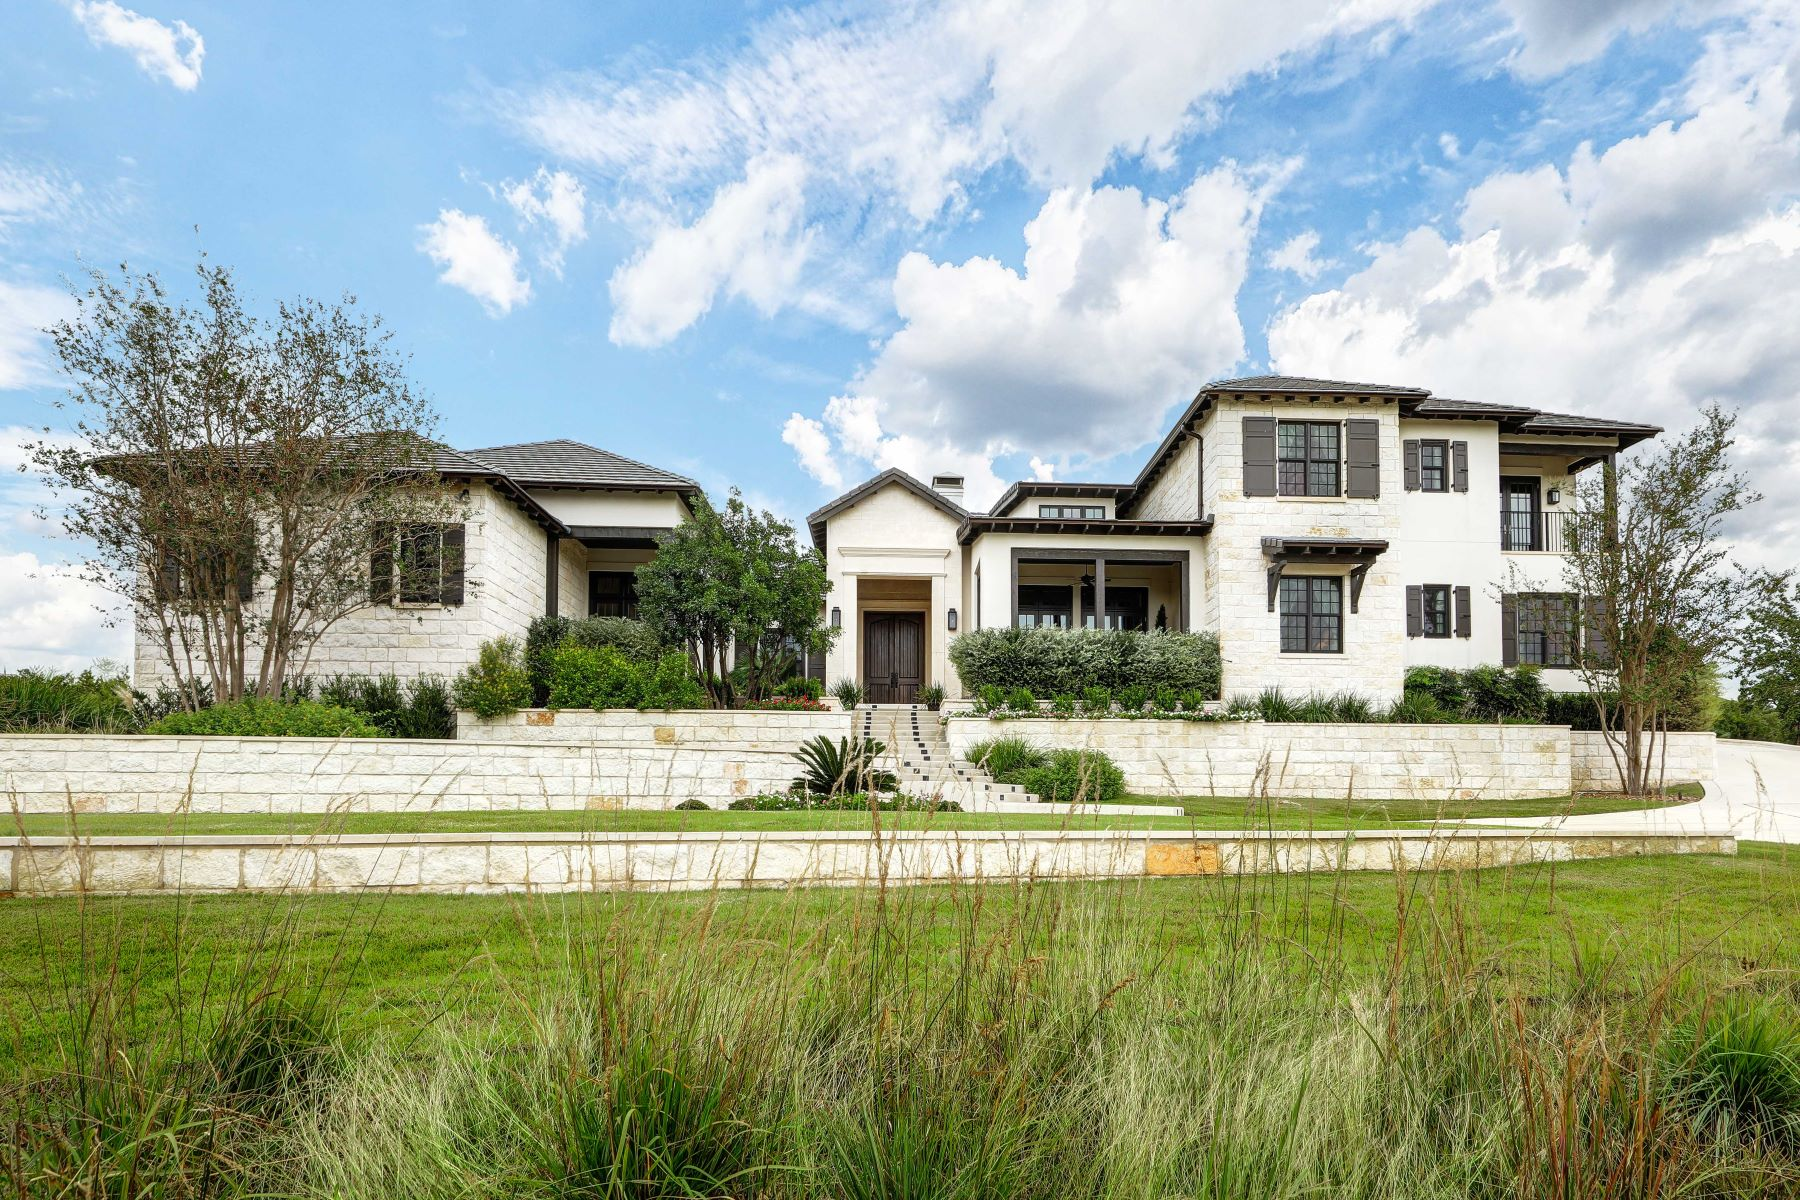 Single Family Homes for Active at Beautiful Home with Stunning Views 57 Oakland Hills Boerne, Texas 78006 United States